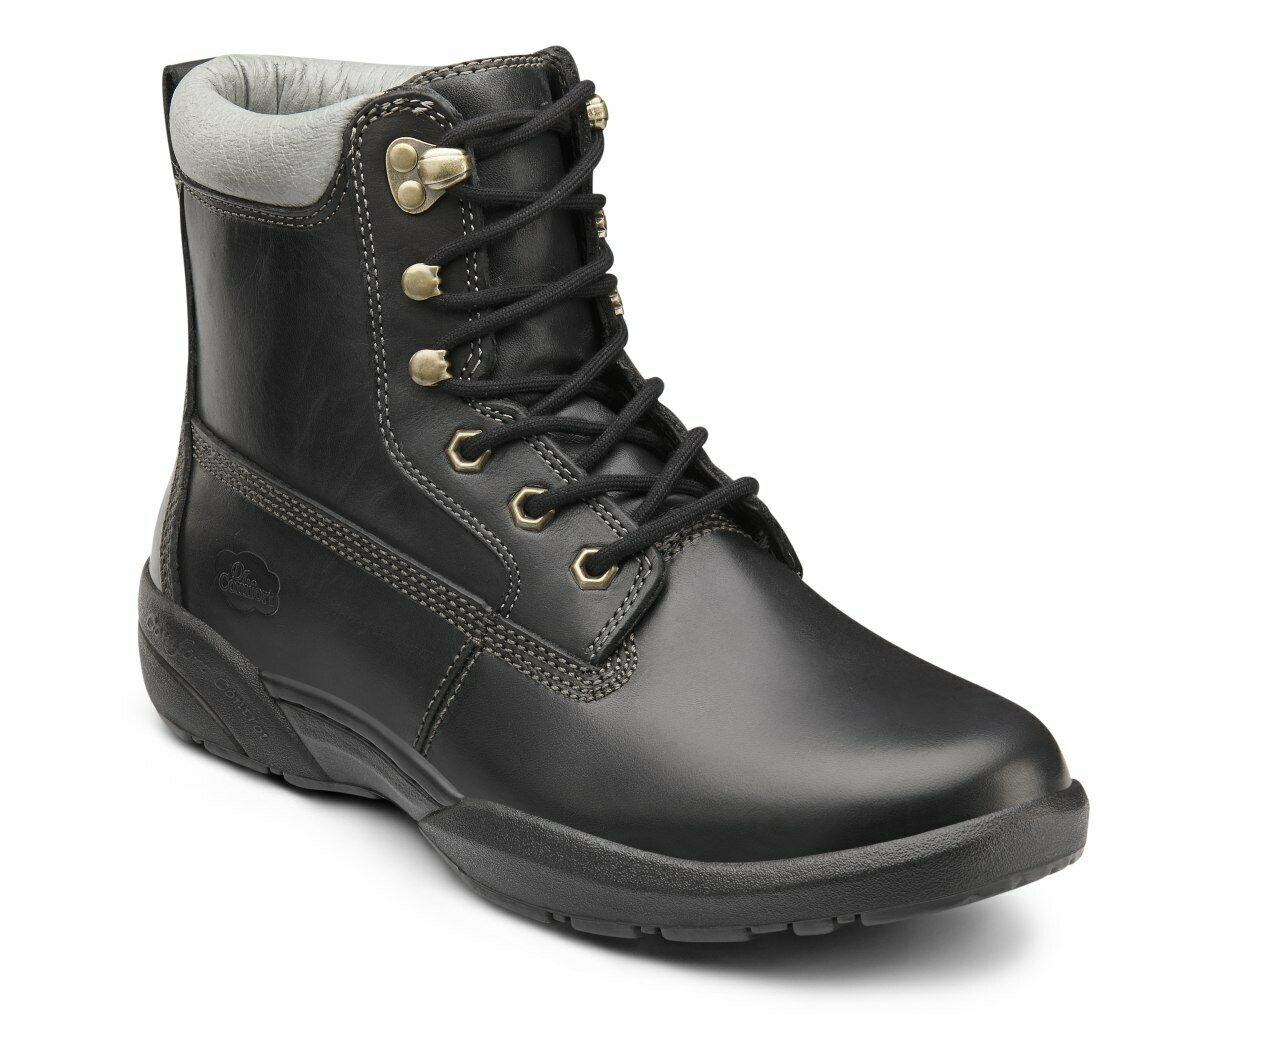 Dr. Comfort Boss Men's Work Boots - All colors - All Sizes